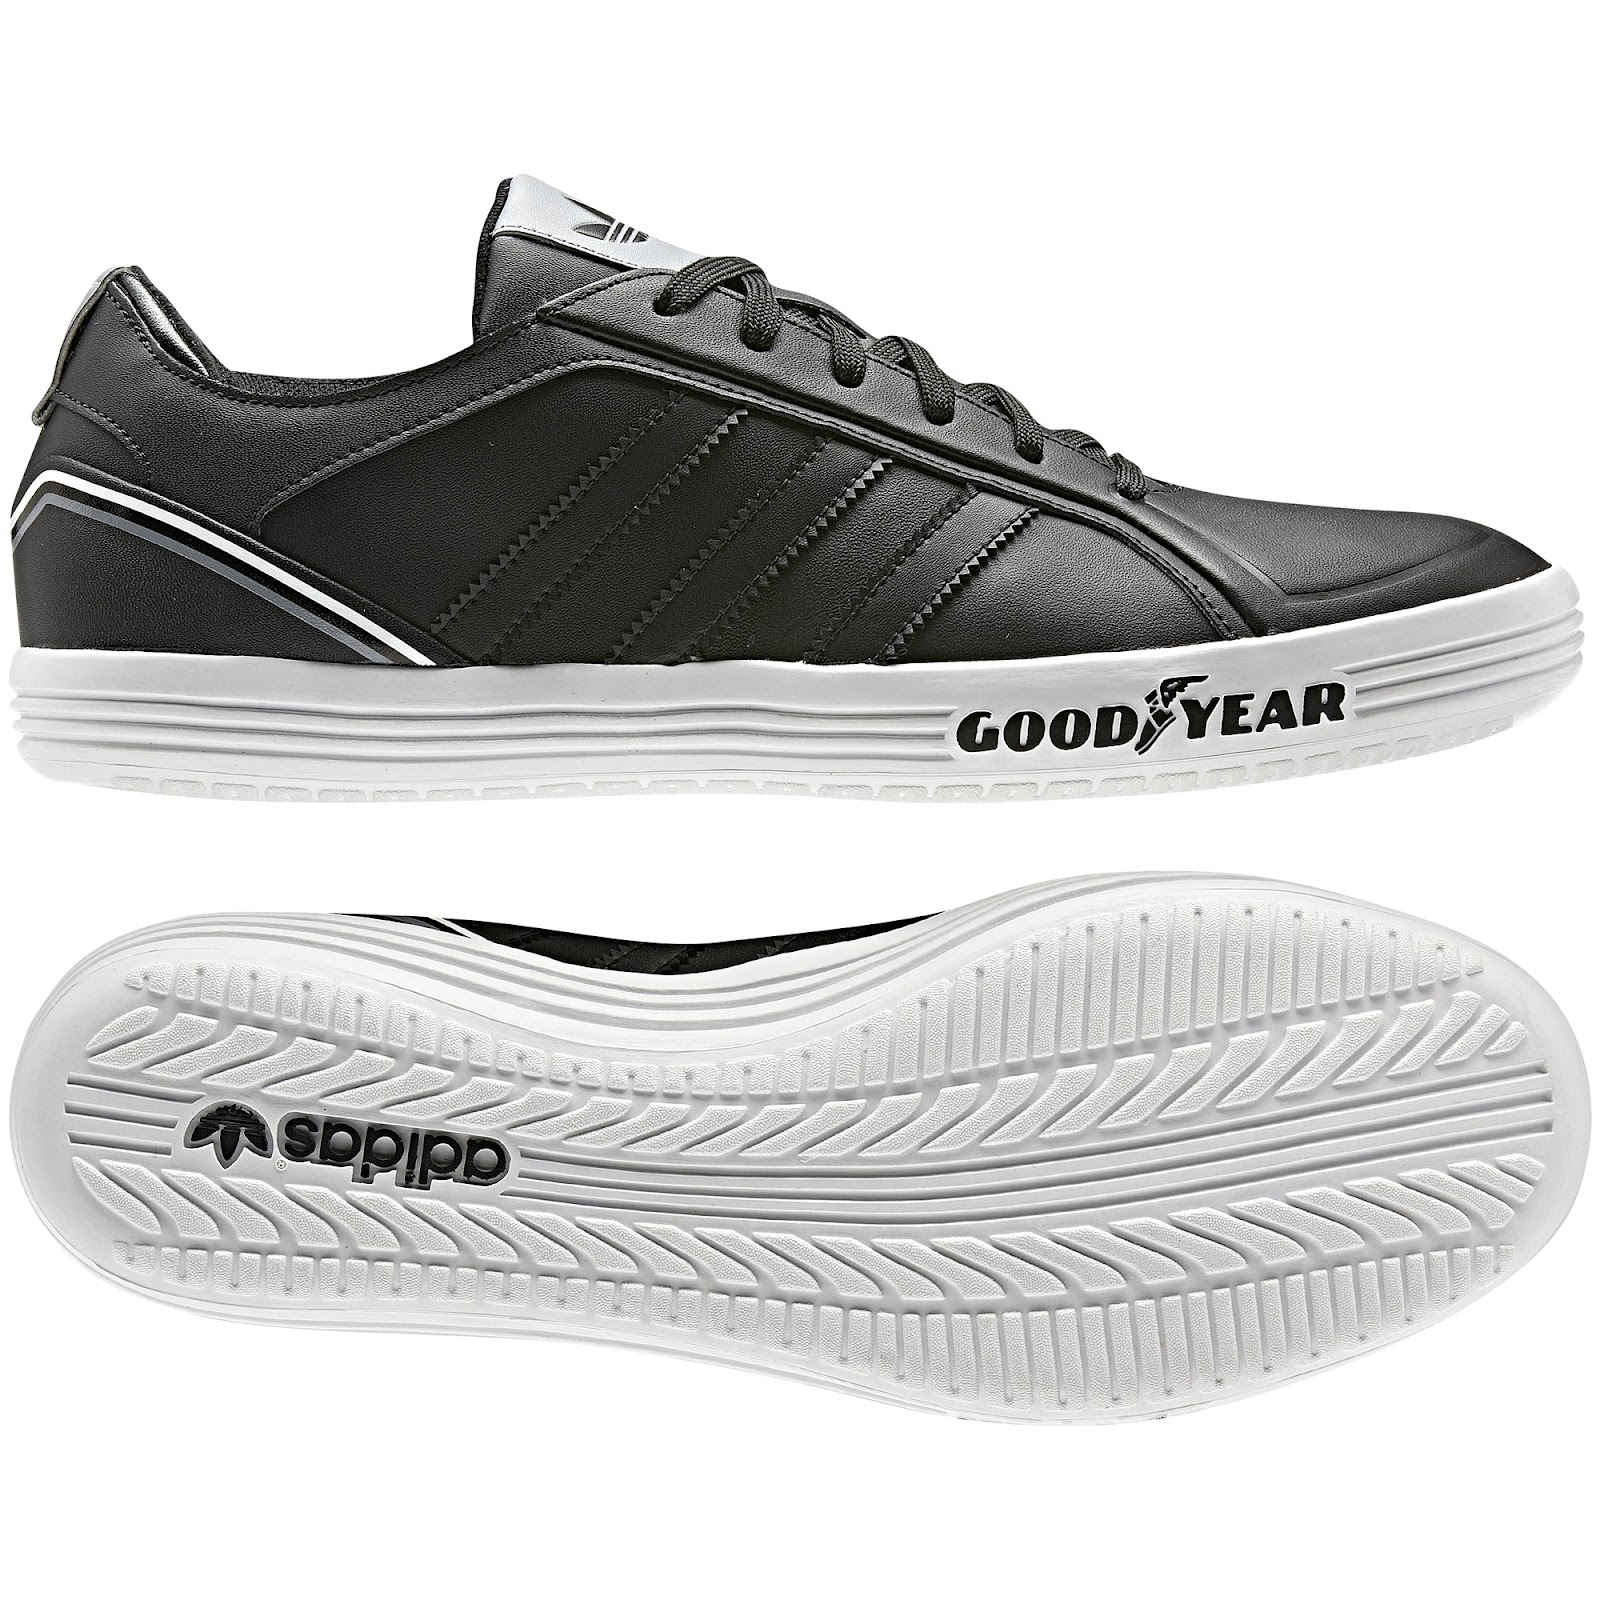 buy popular 8b071 0c3c3 Adidas Goodyear Collection Shoes - Cars  Life  Cars Fashion Lifestyle Blog